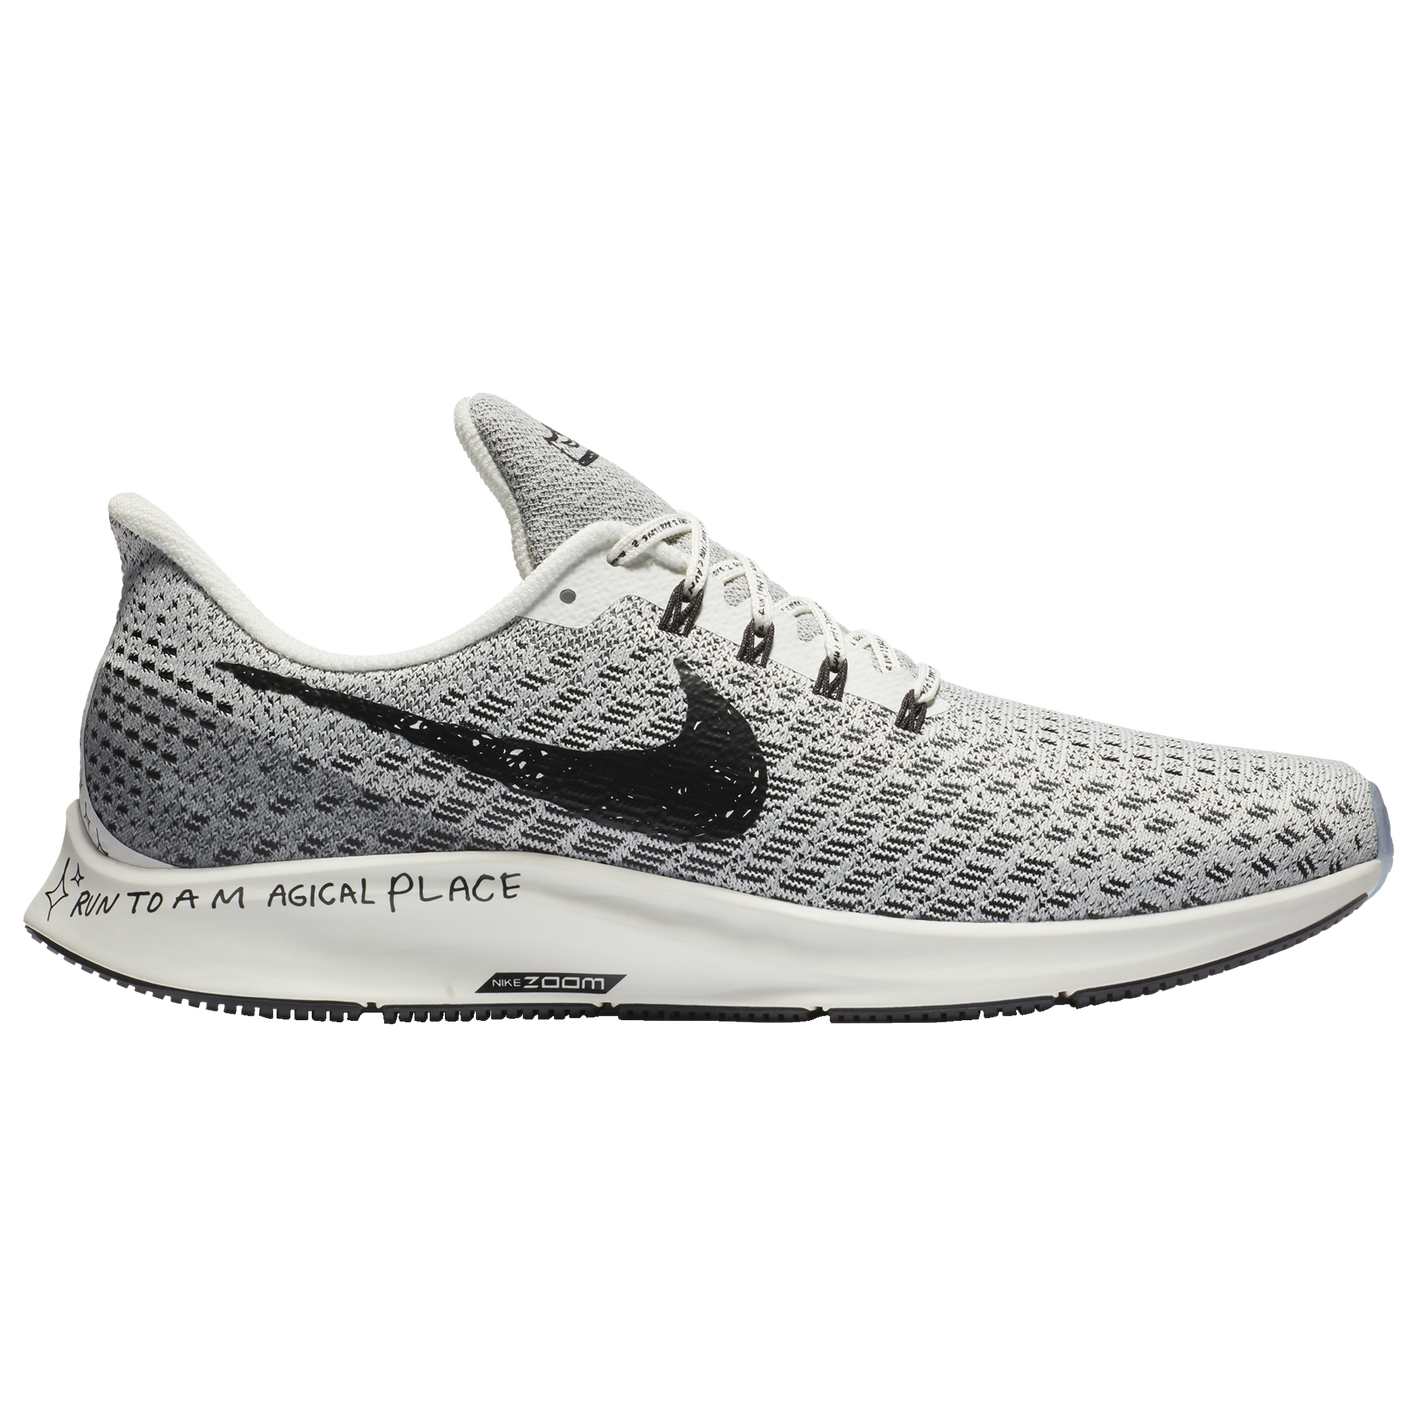 e0b5c727237f5 Nike Air Zoom Pegasus 35 - Men s - Running - Shoes - White Black